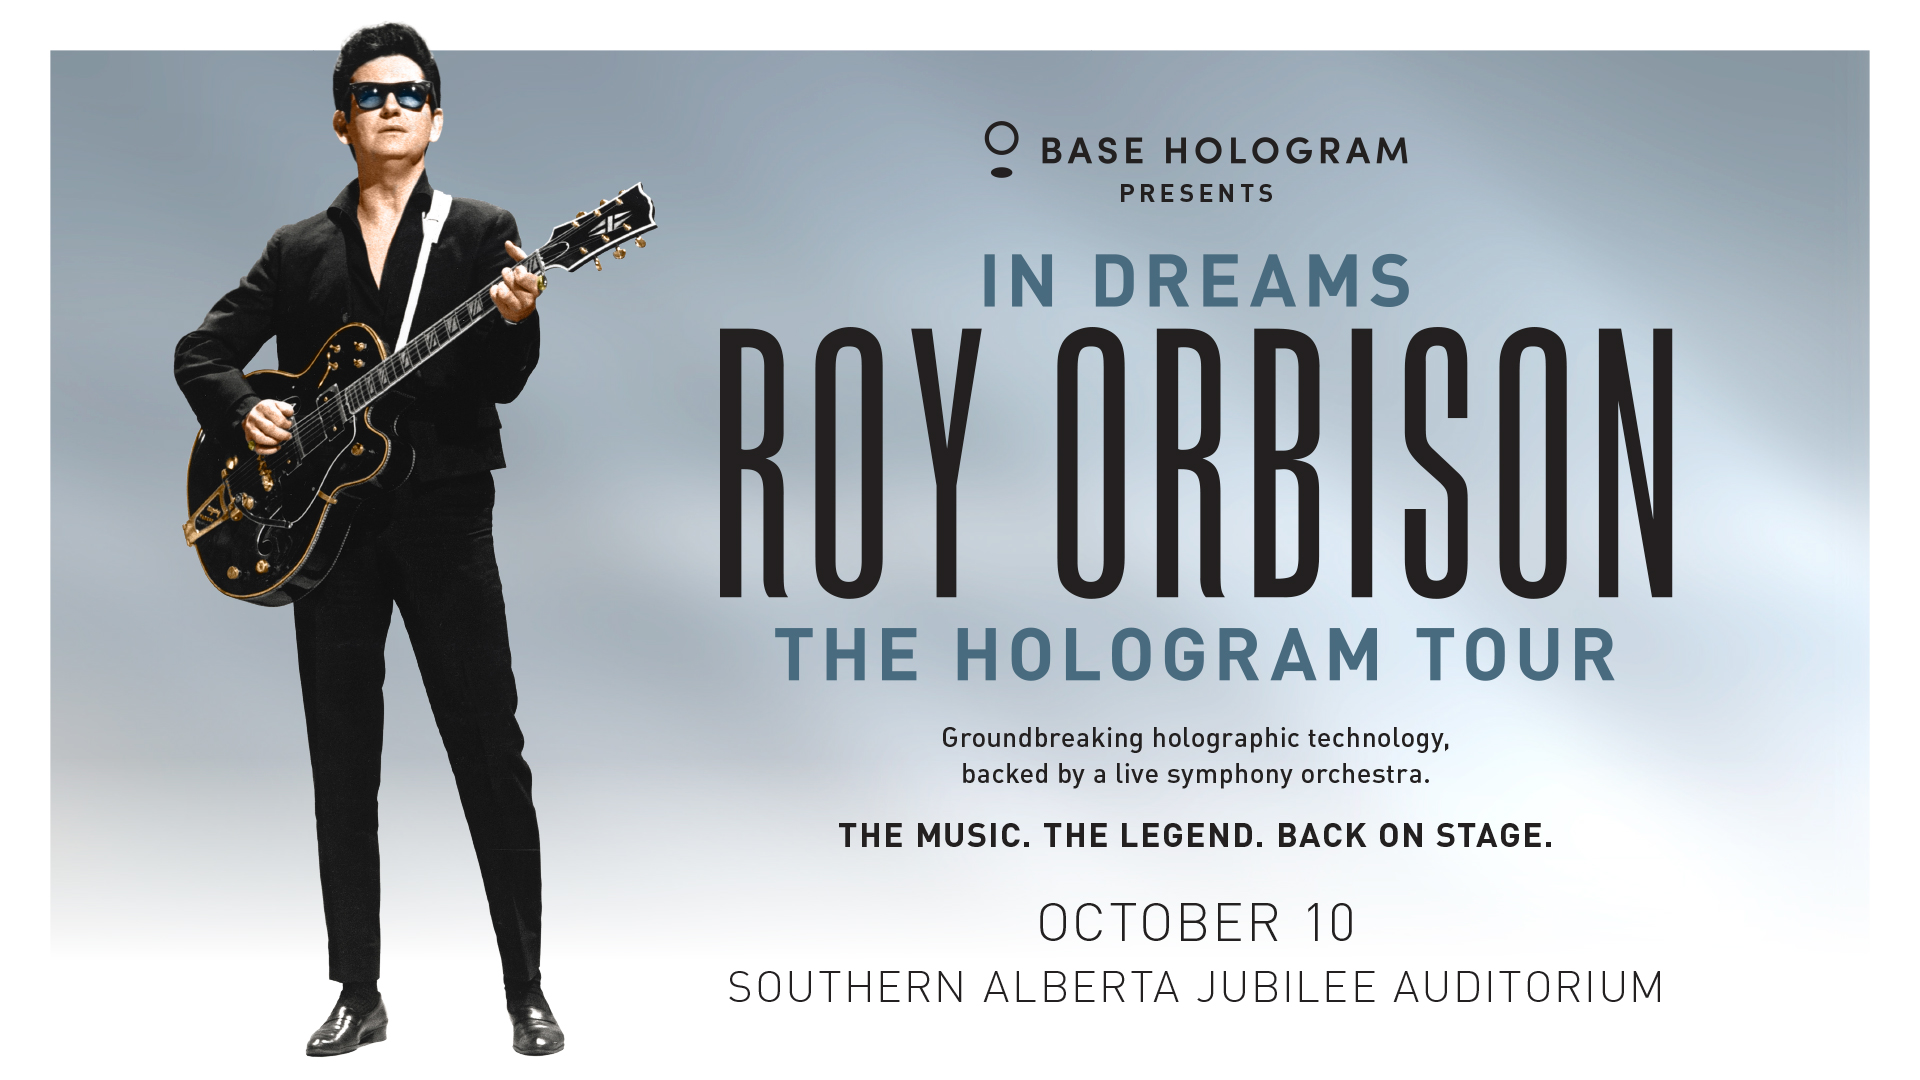 In Dreams Roy Orbison The Hologram Tour 660 News